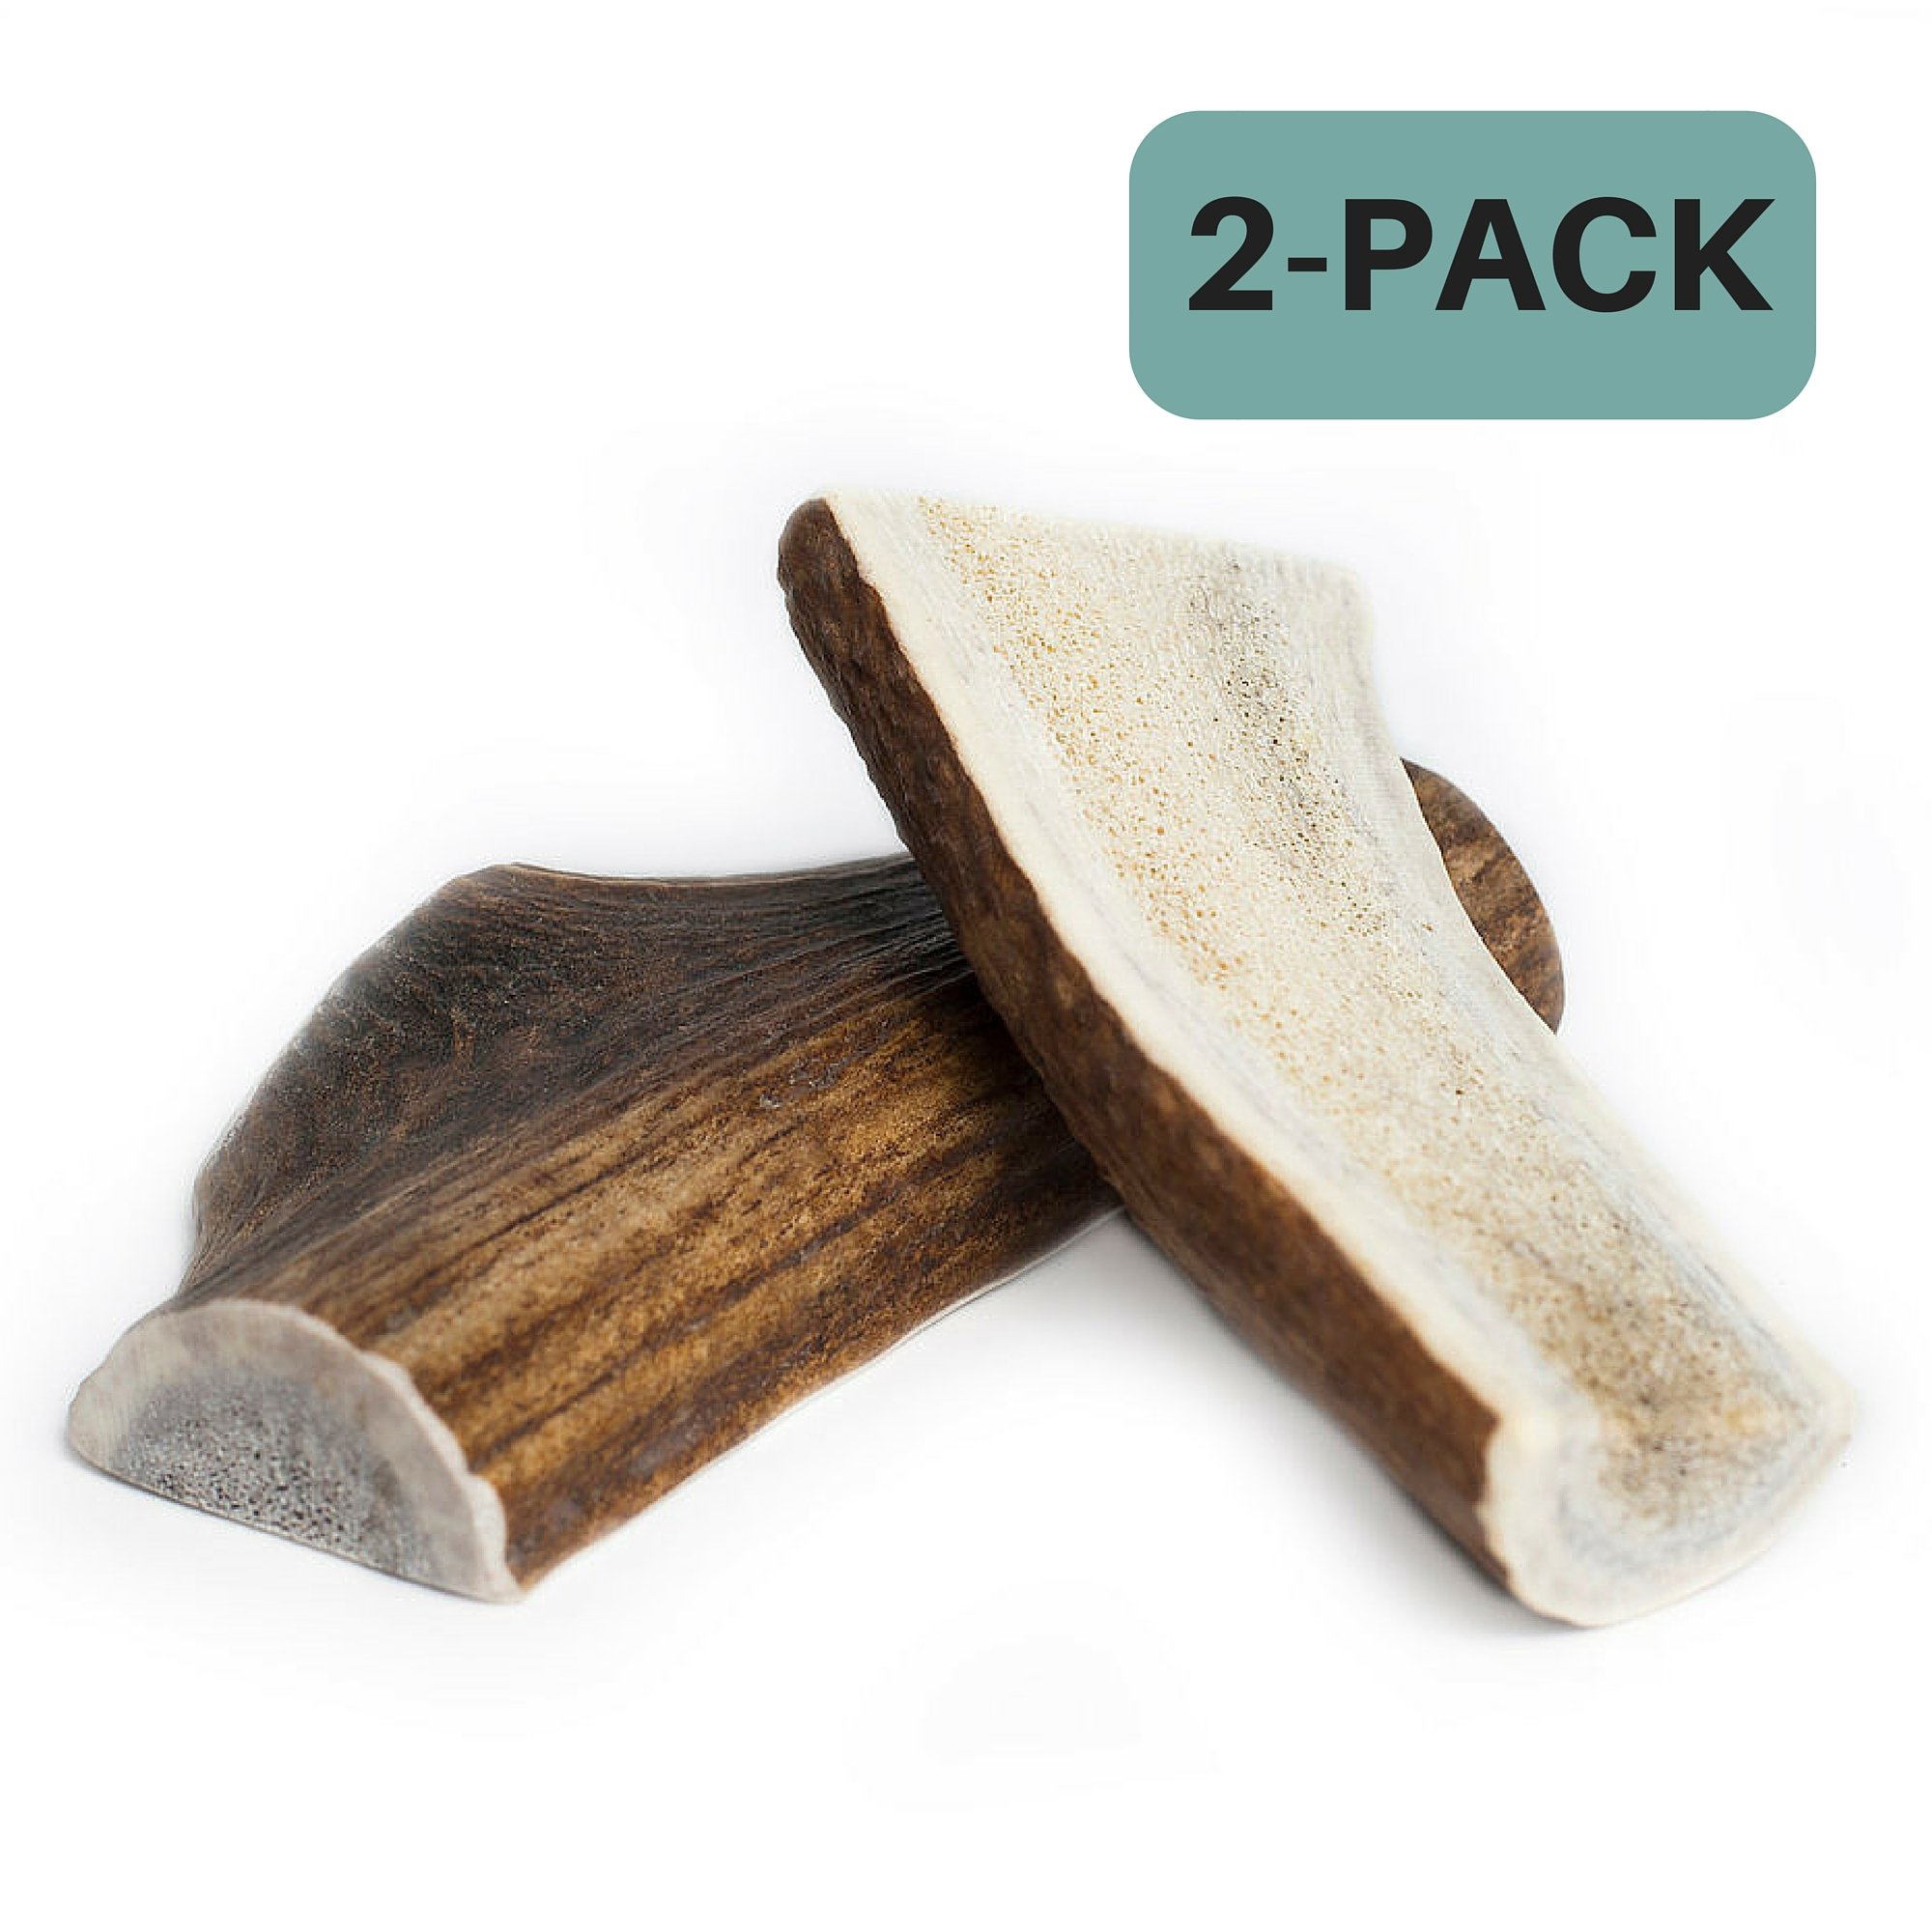 Chipper Critters Split Elk Antler Chew Dogs - Small 2-Pack - All Natural, Made in the USA The Best, Healthy, Virtually Indestructible Treats Chews Dogs Puppies (SM 2-pack)